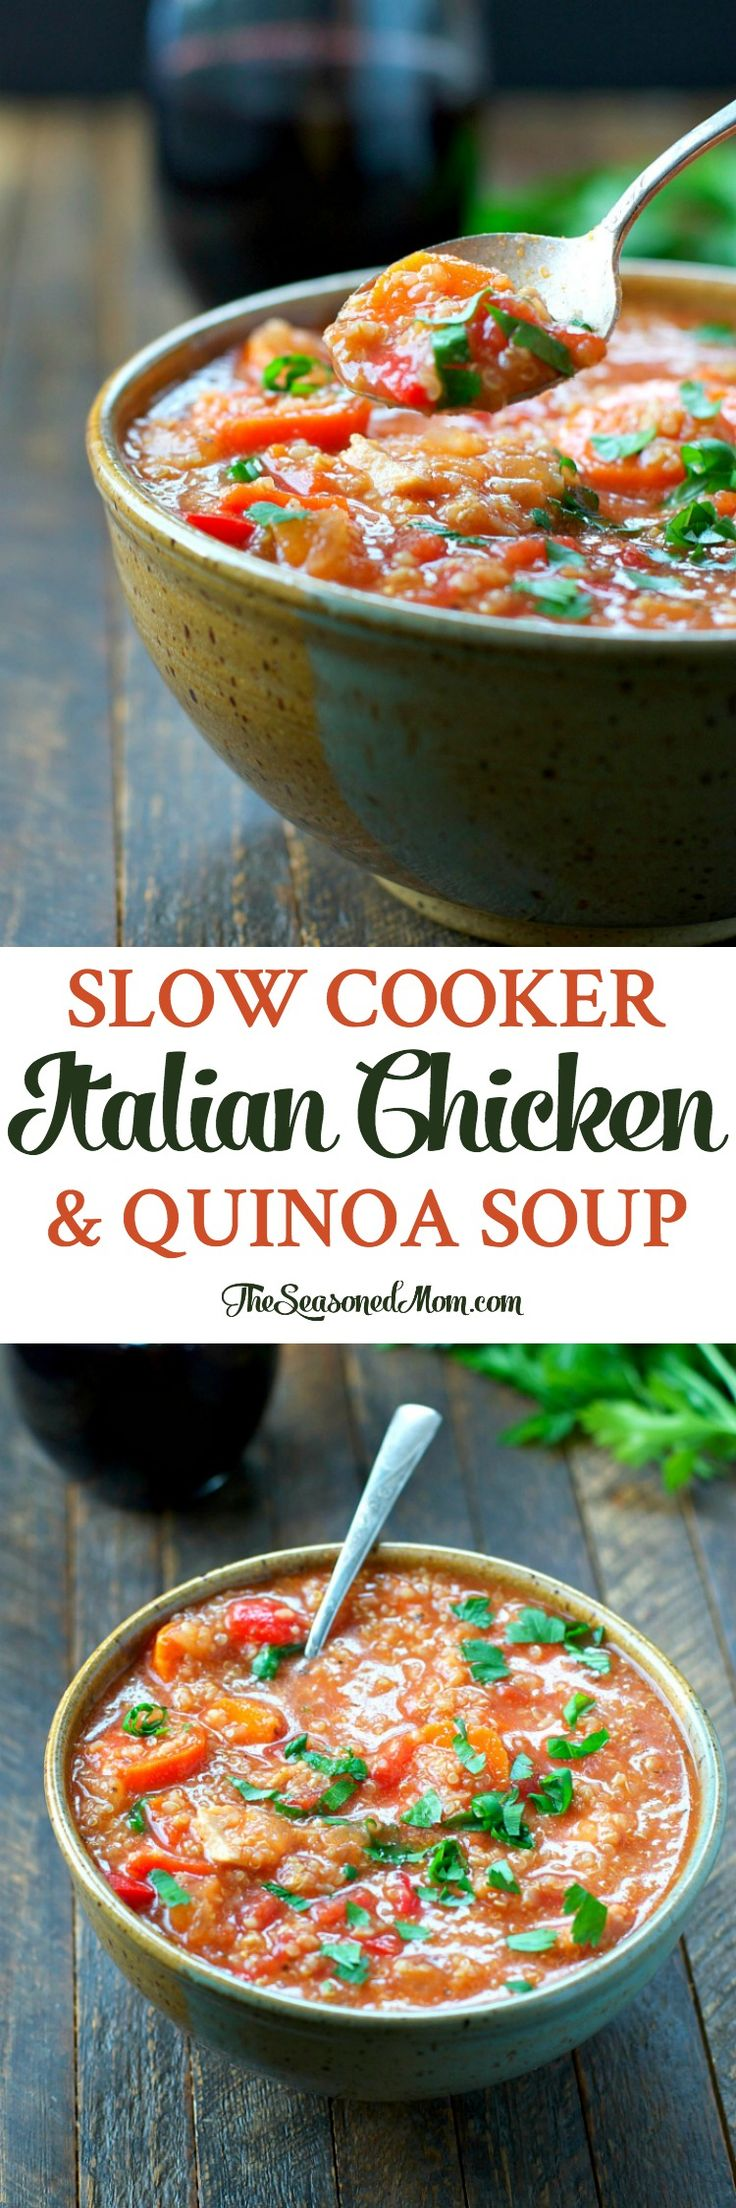 Just 5 minutes of prep for this easy Slow Cooker Italian Chicken and Quinoa Soup -- a healthy dinner that the whole family will love! Gluten Free | Healthy Recipes | Healthy Dinner | Dinner Ideas | Soup | Slow Cooker Recipes | Slow Cooker Soup